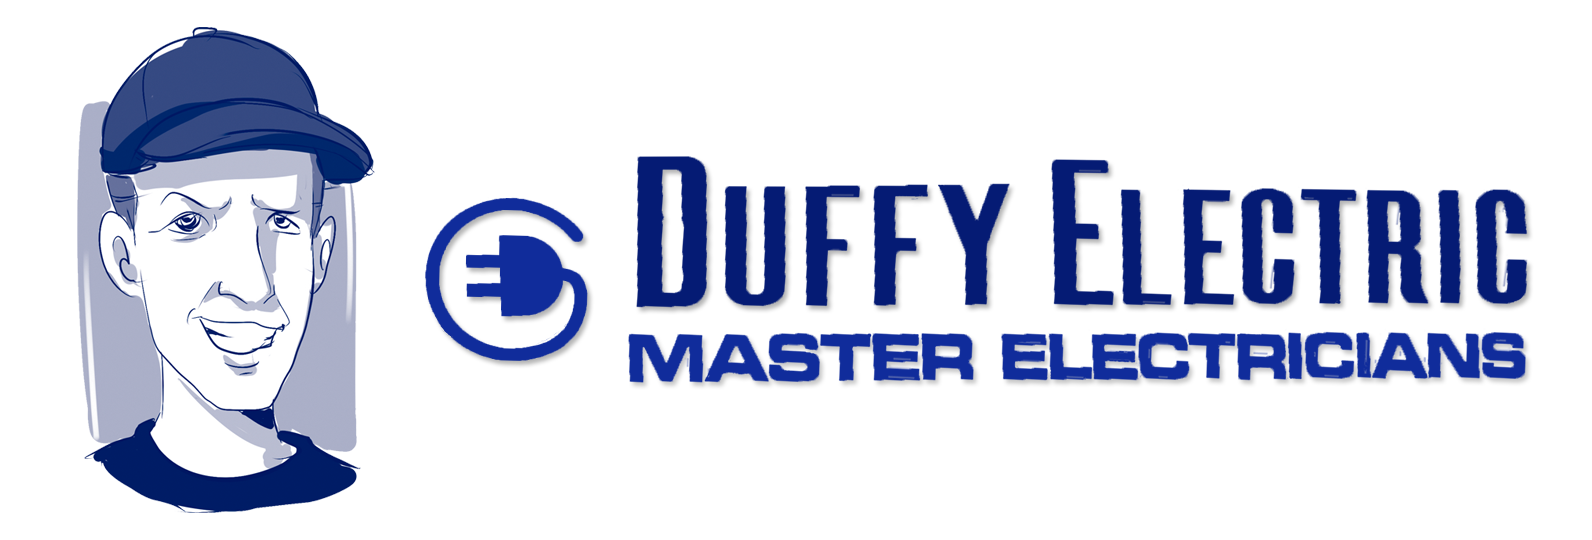 Duffy Electric